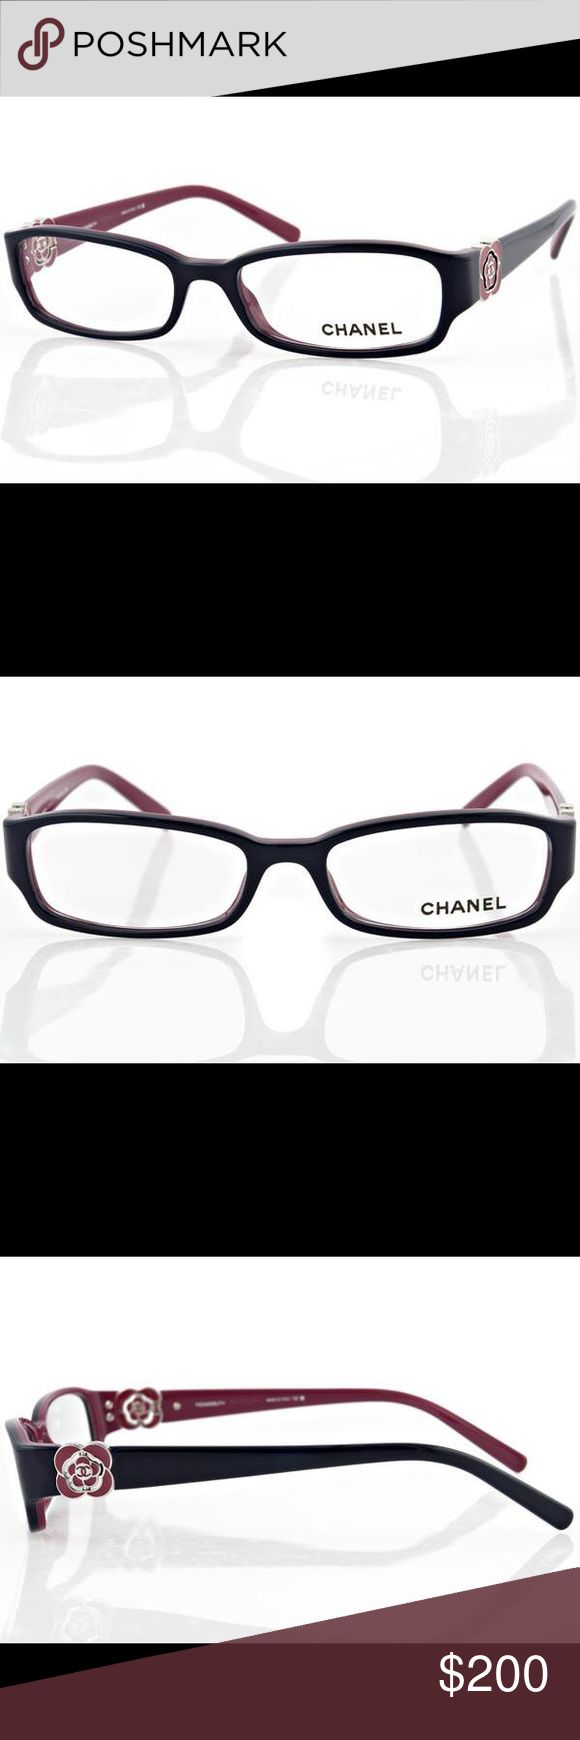 Chanel Optical Glasses Frames Authentic Chanel optical frames. These are used and have some scratching. They have plenty of life left in them and are beautiful. CHANEL Accessories Glasses